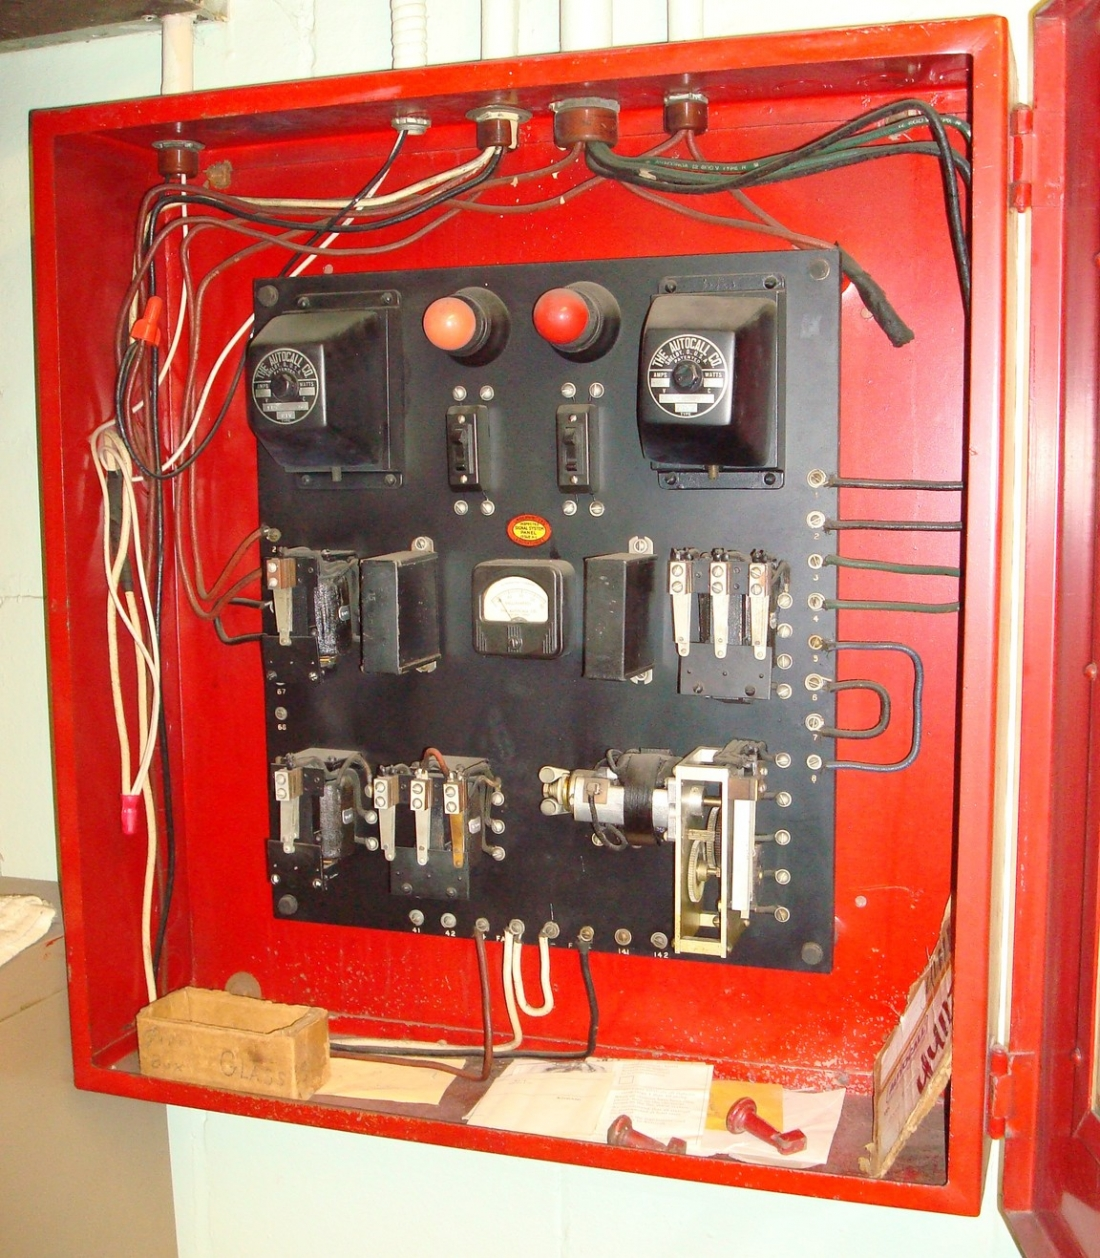 hight resolution of if you have questions or want further information regarding any of the artifacts seen on this website please contact old school fire alarms